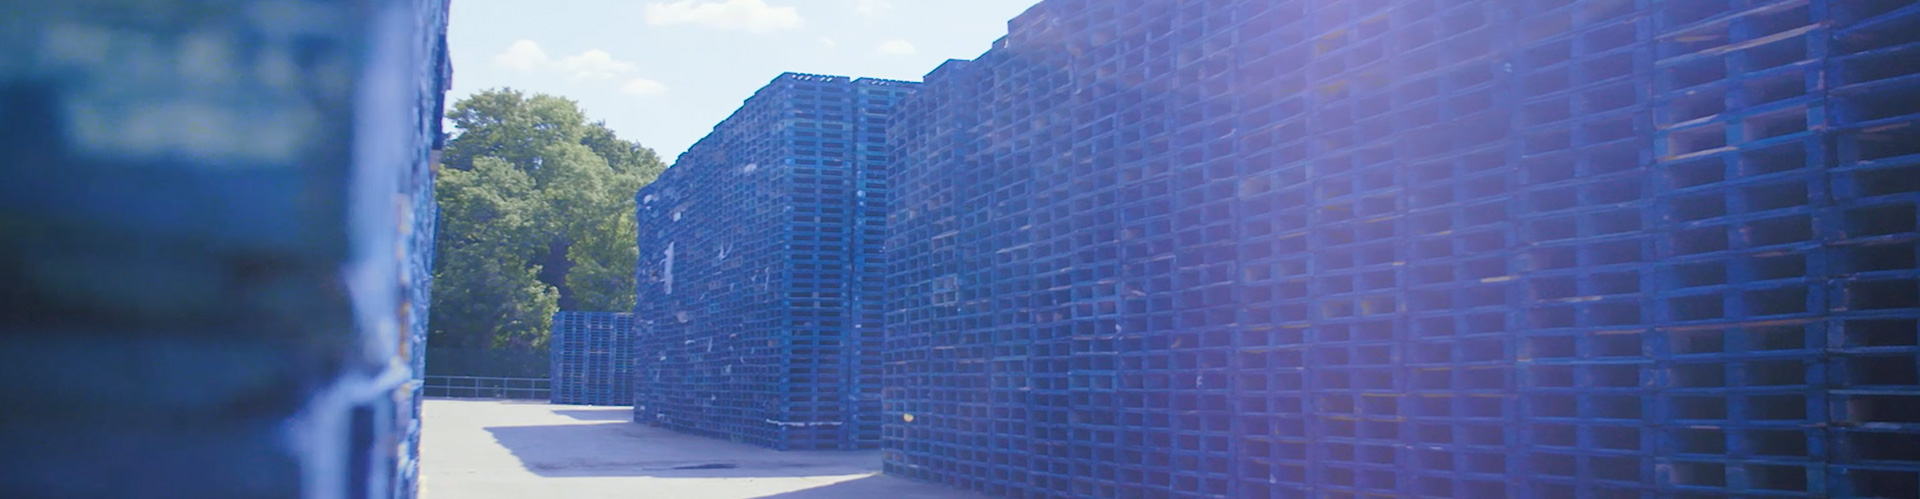 A photograph of hundreds of blue stacked CHEP pallets in rows in an outside environment